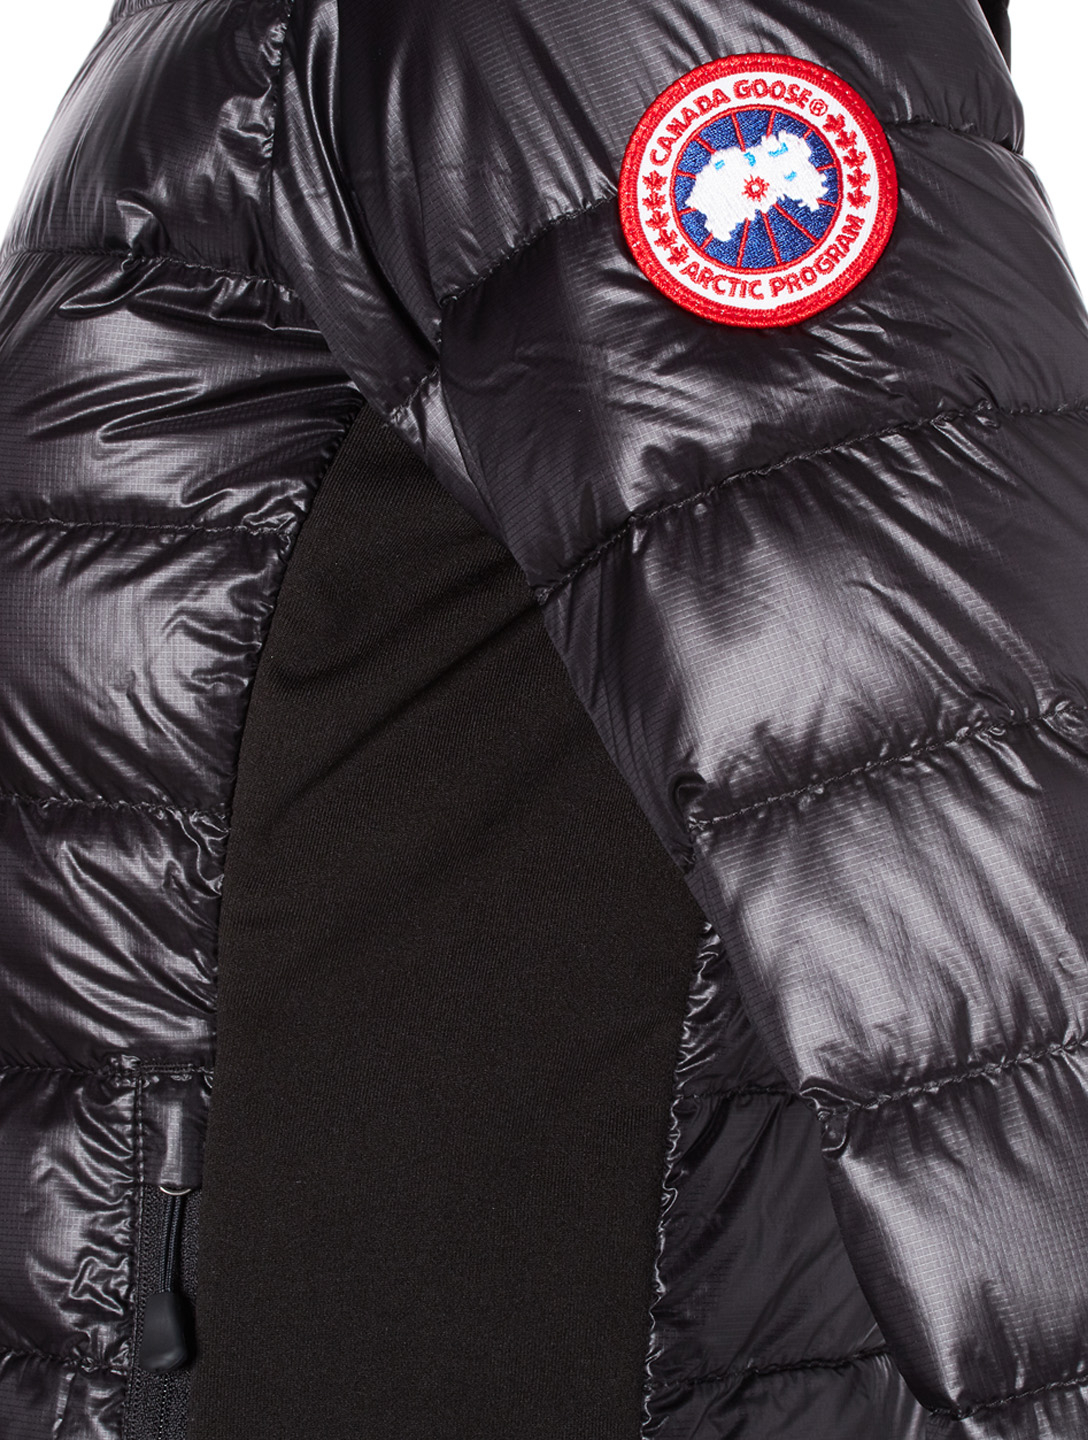 CANADA GOOSE HyBridge Lite Down Puffer Jacket HyBridge Lite Down Puffer Jacket Black